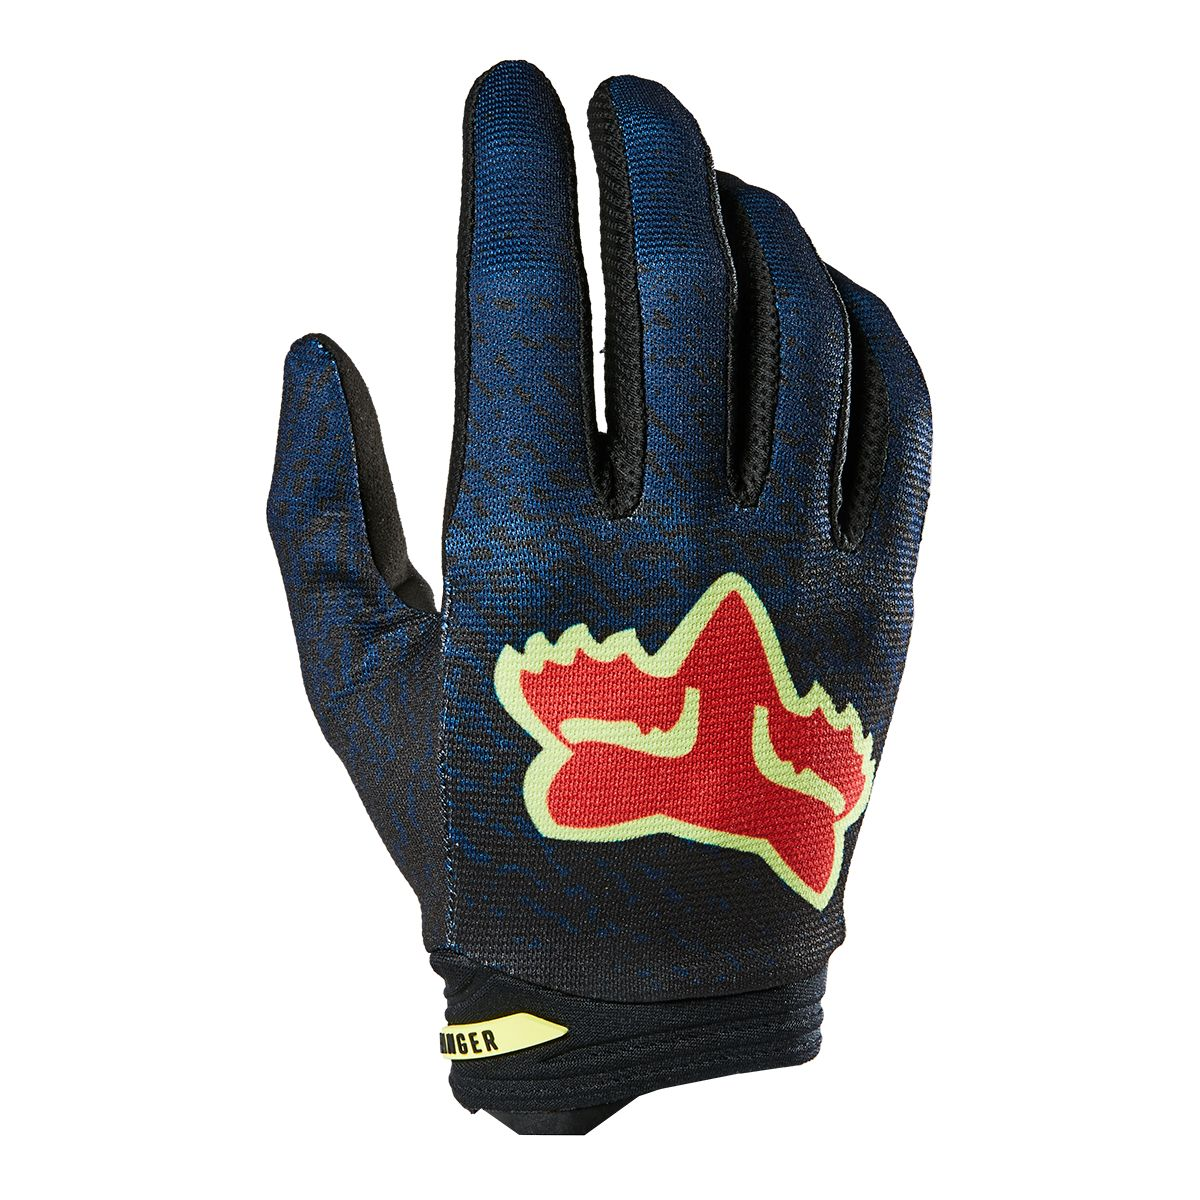 RANGER GLOVE QS Limited Edition